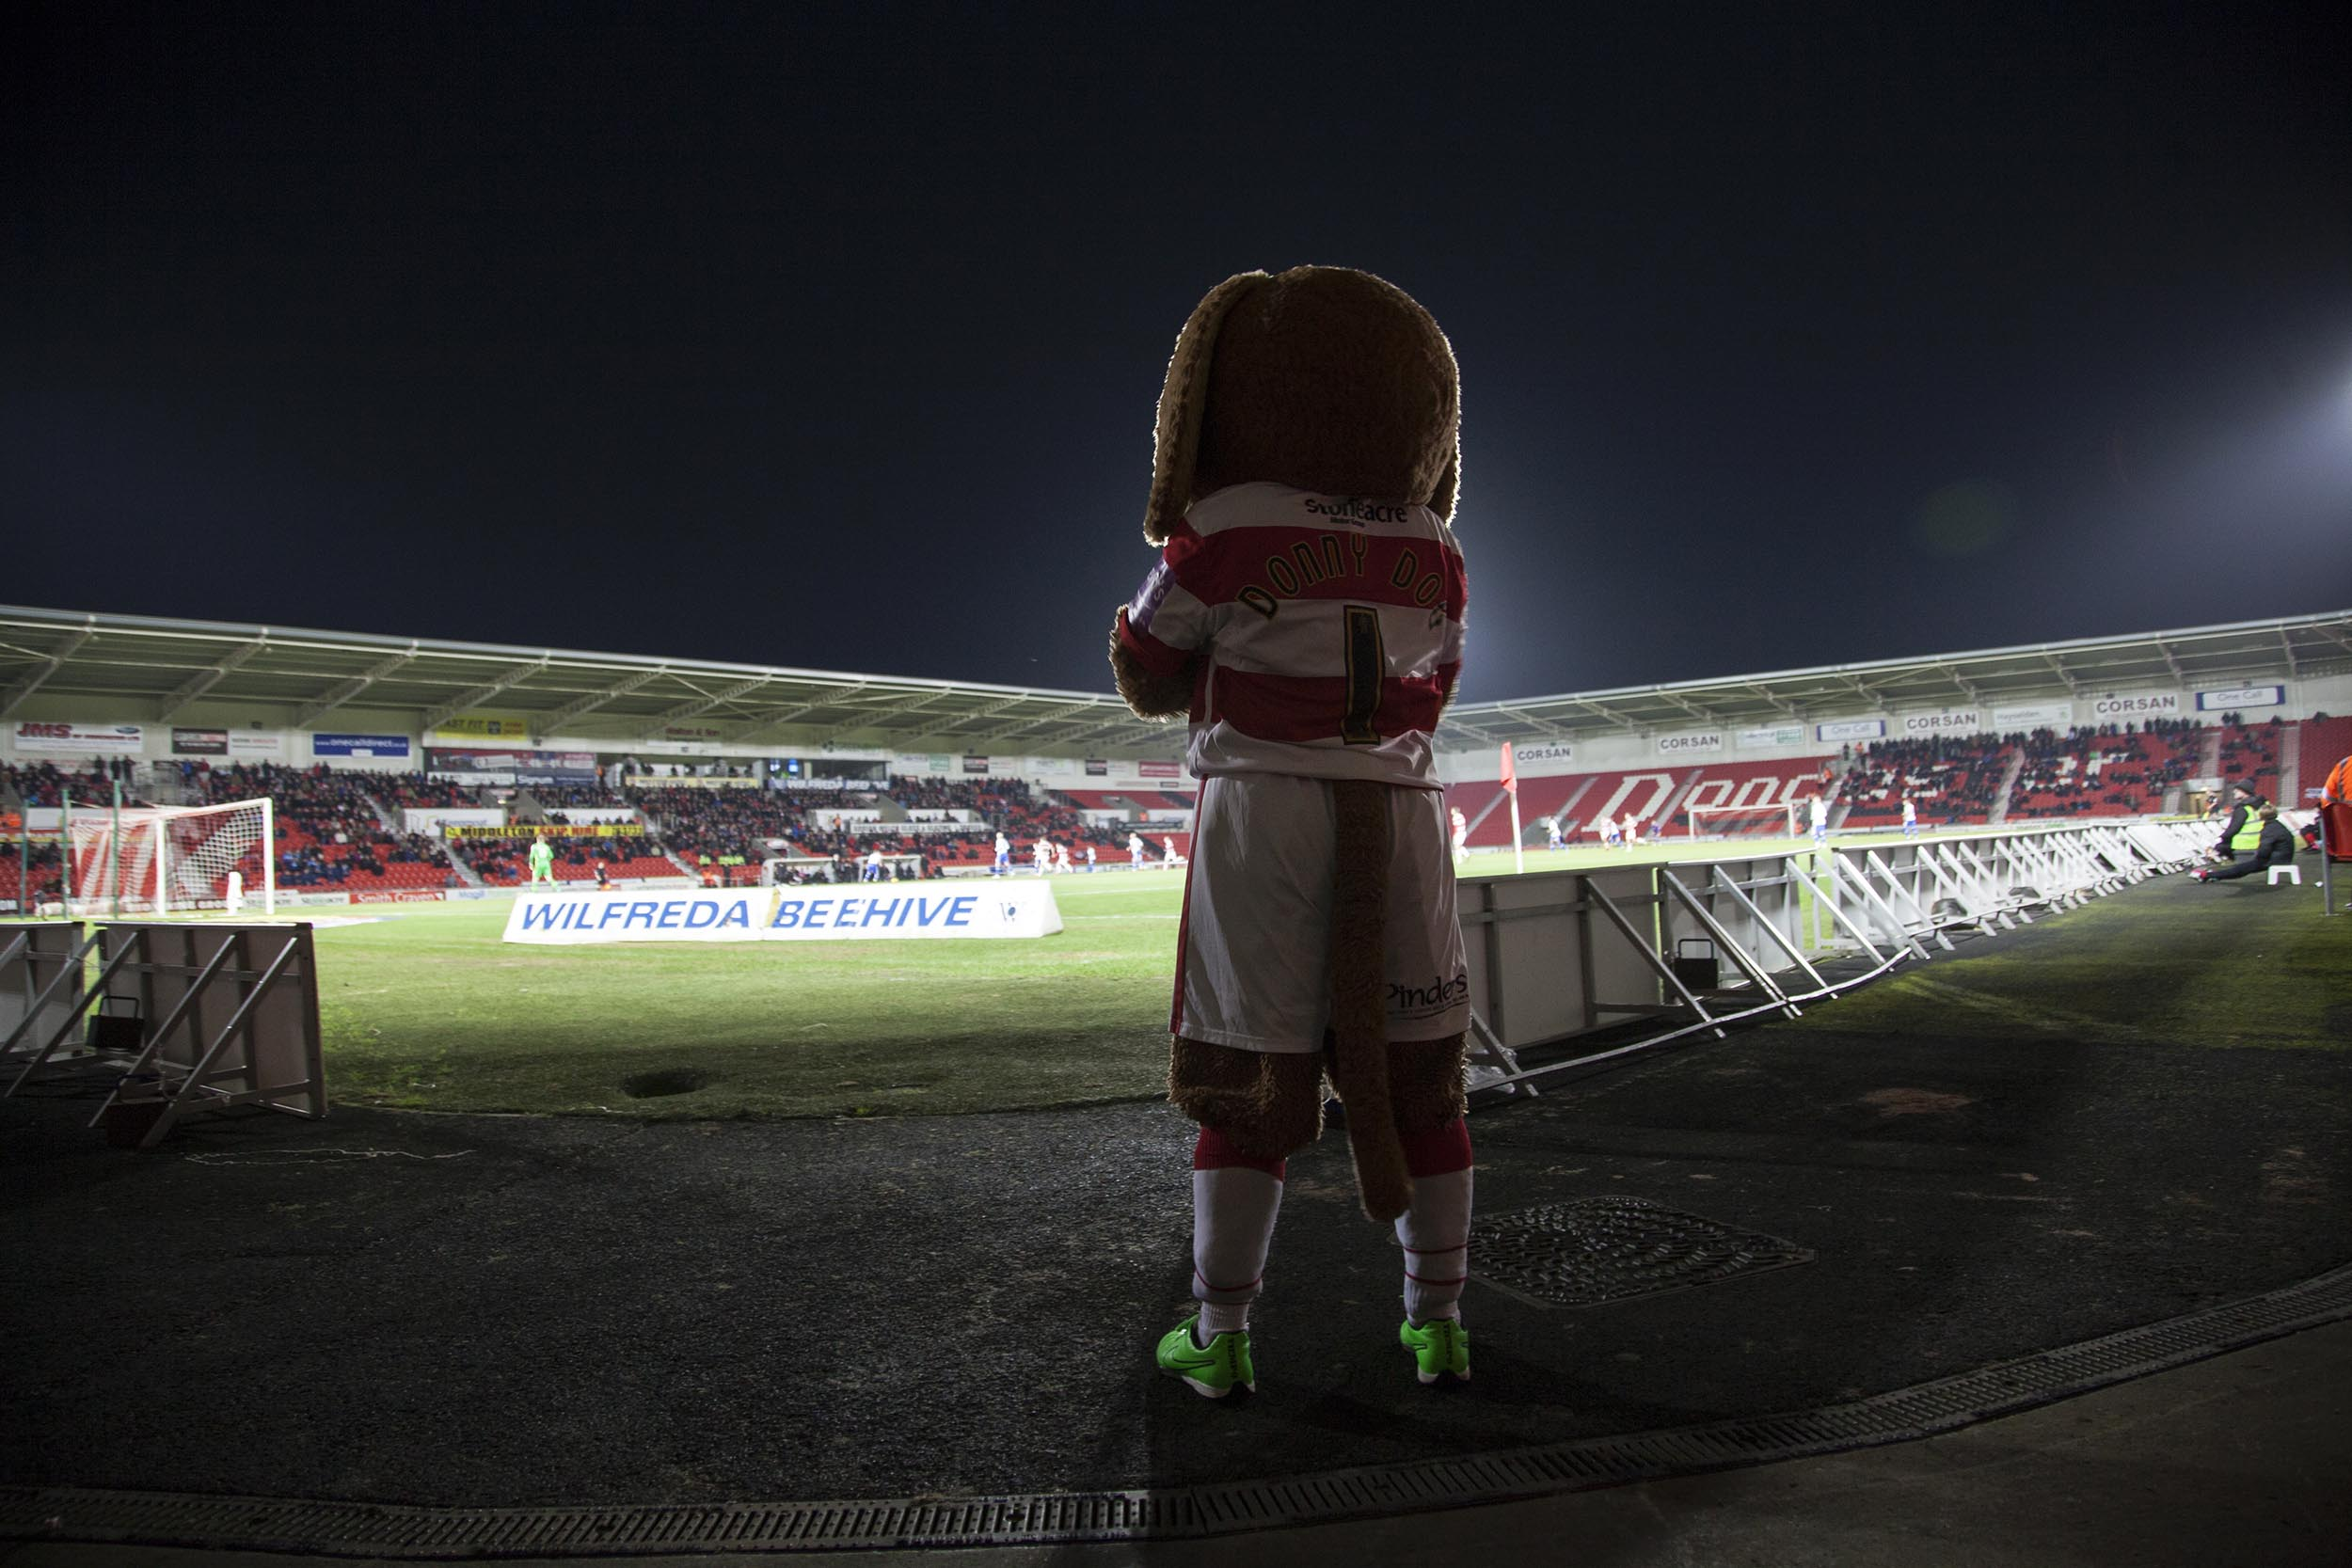 A documentary photograph of Doncaster Rovers' mascot at the Keepmoat Stadium.  I was commissioned as documentary photographer by German football magazine 11 Freunde.